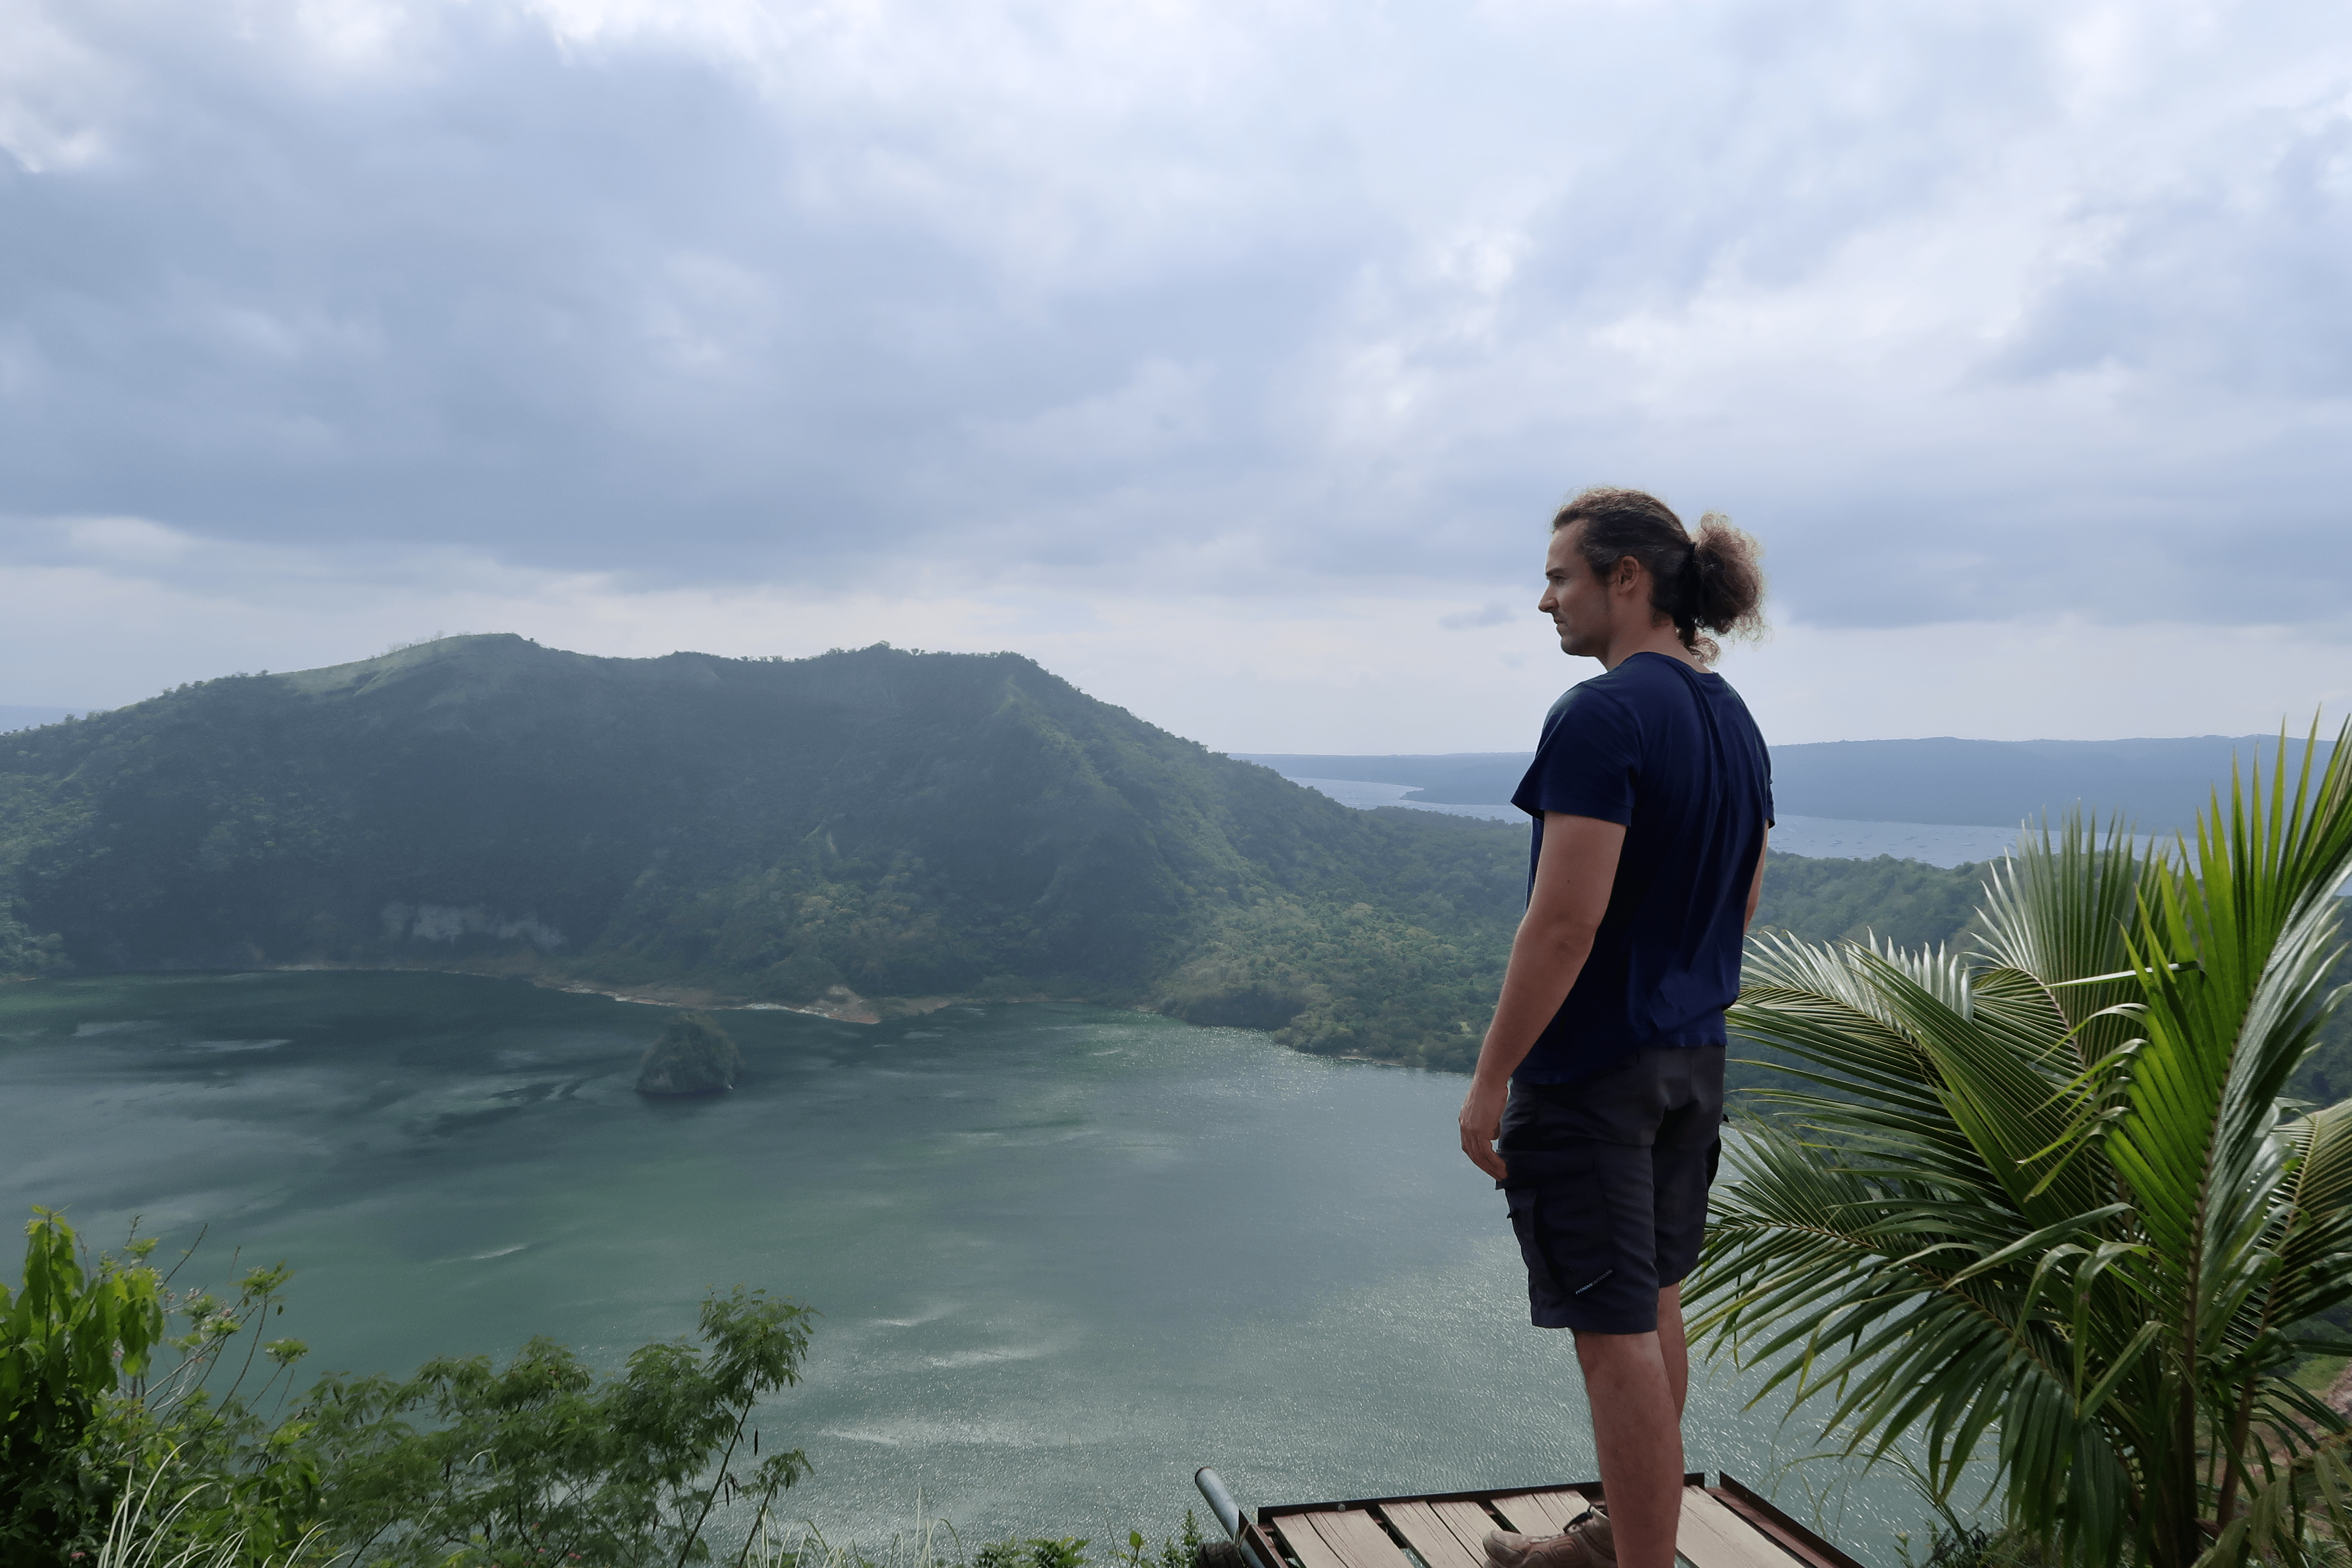 Lenny through paradise overlooking taal volcano, batangas, philippines